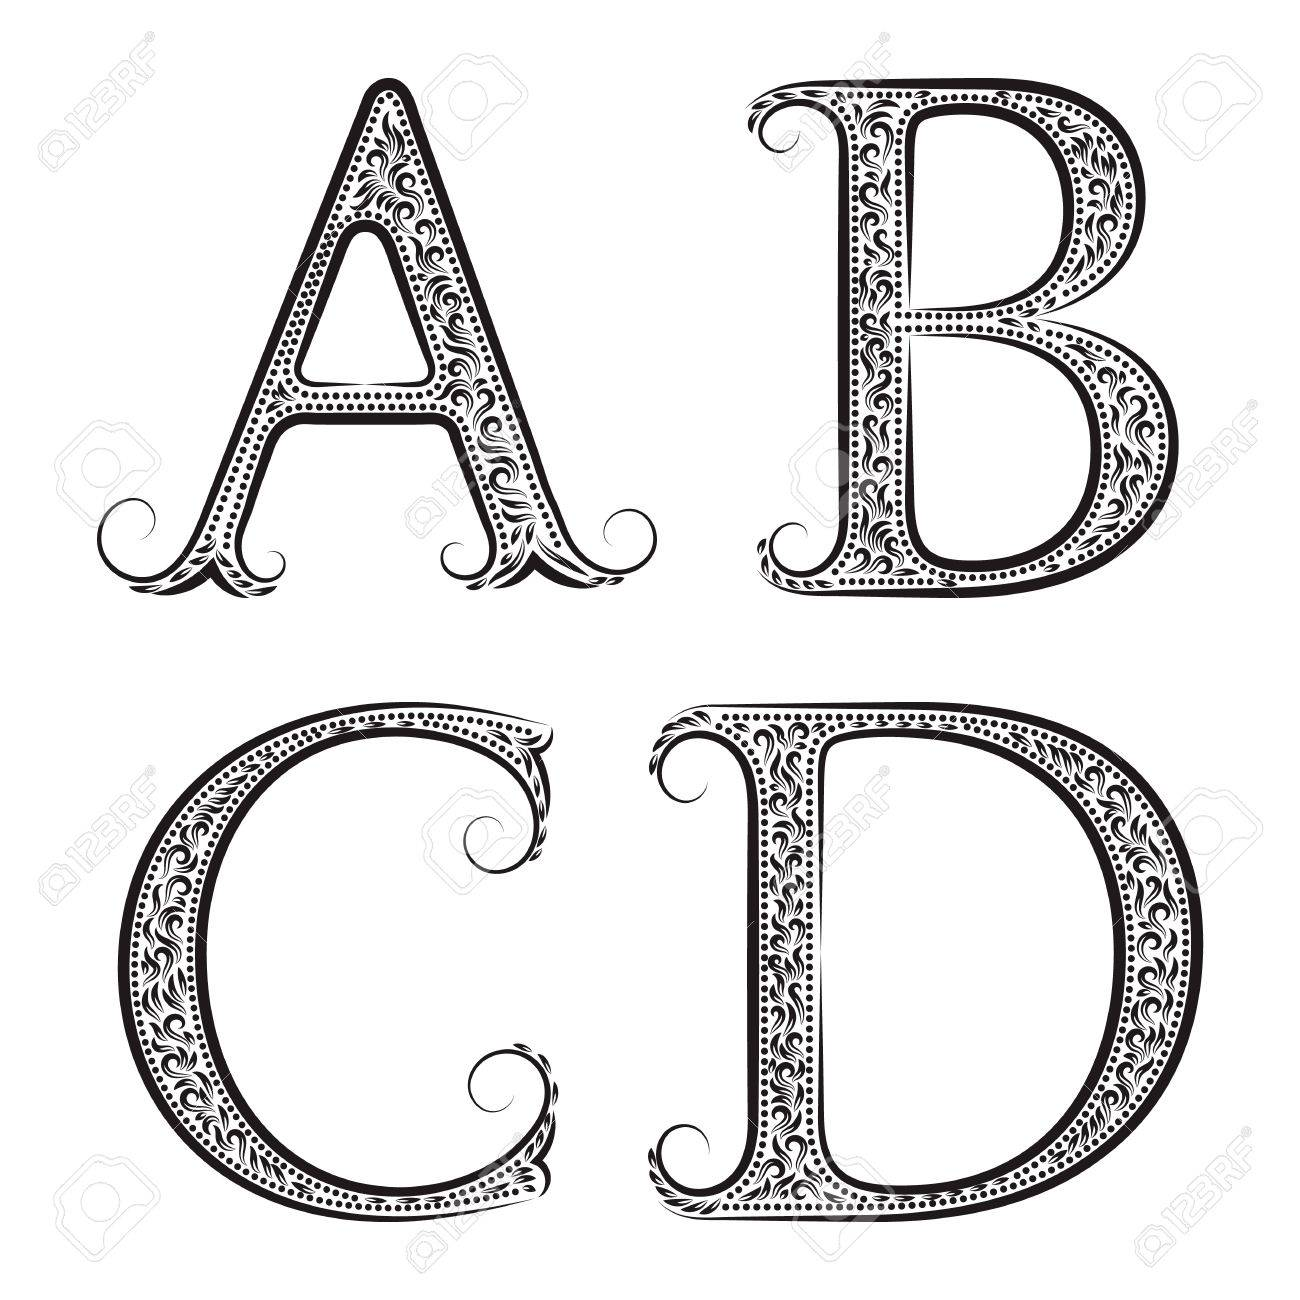 A B C D Vintage Patterned Letters Font In Floral Baroque Style